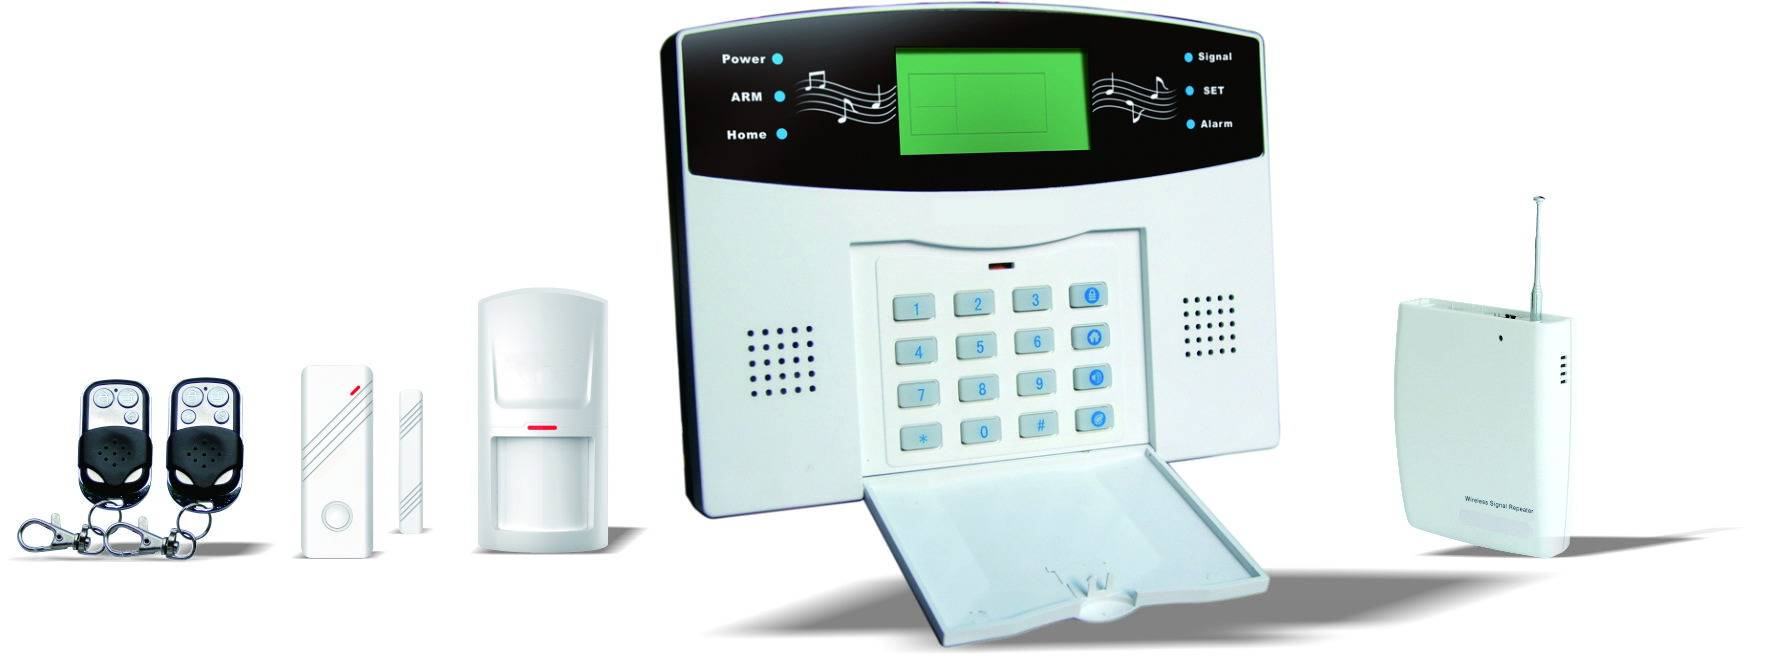 PSTN alarm system with LCD Screen